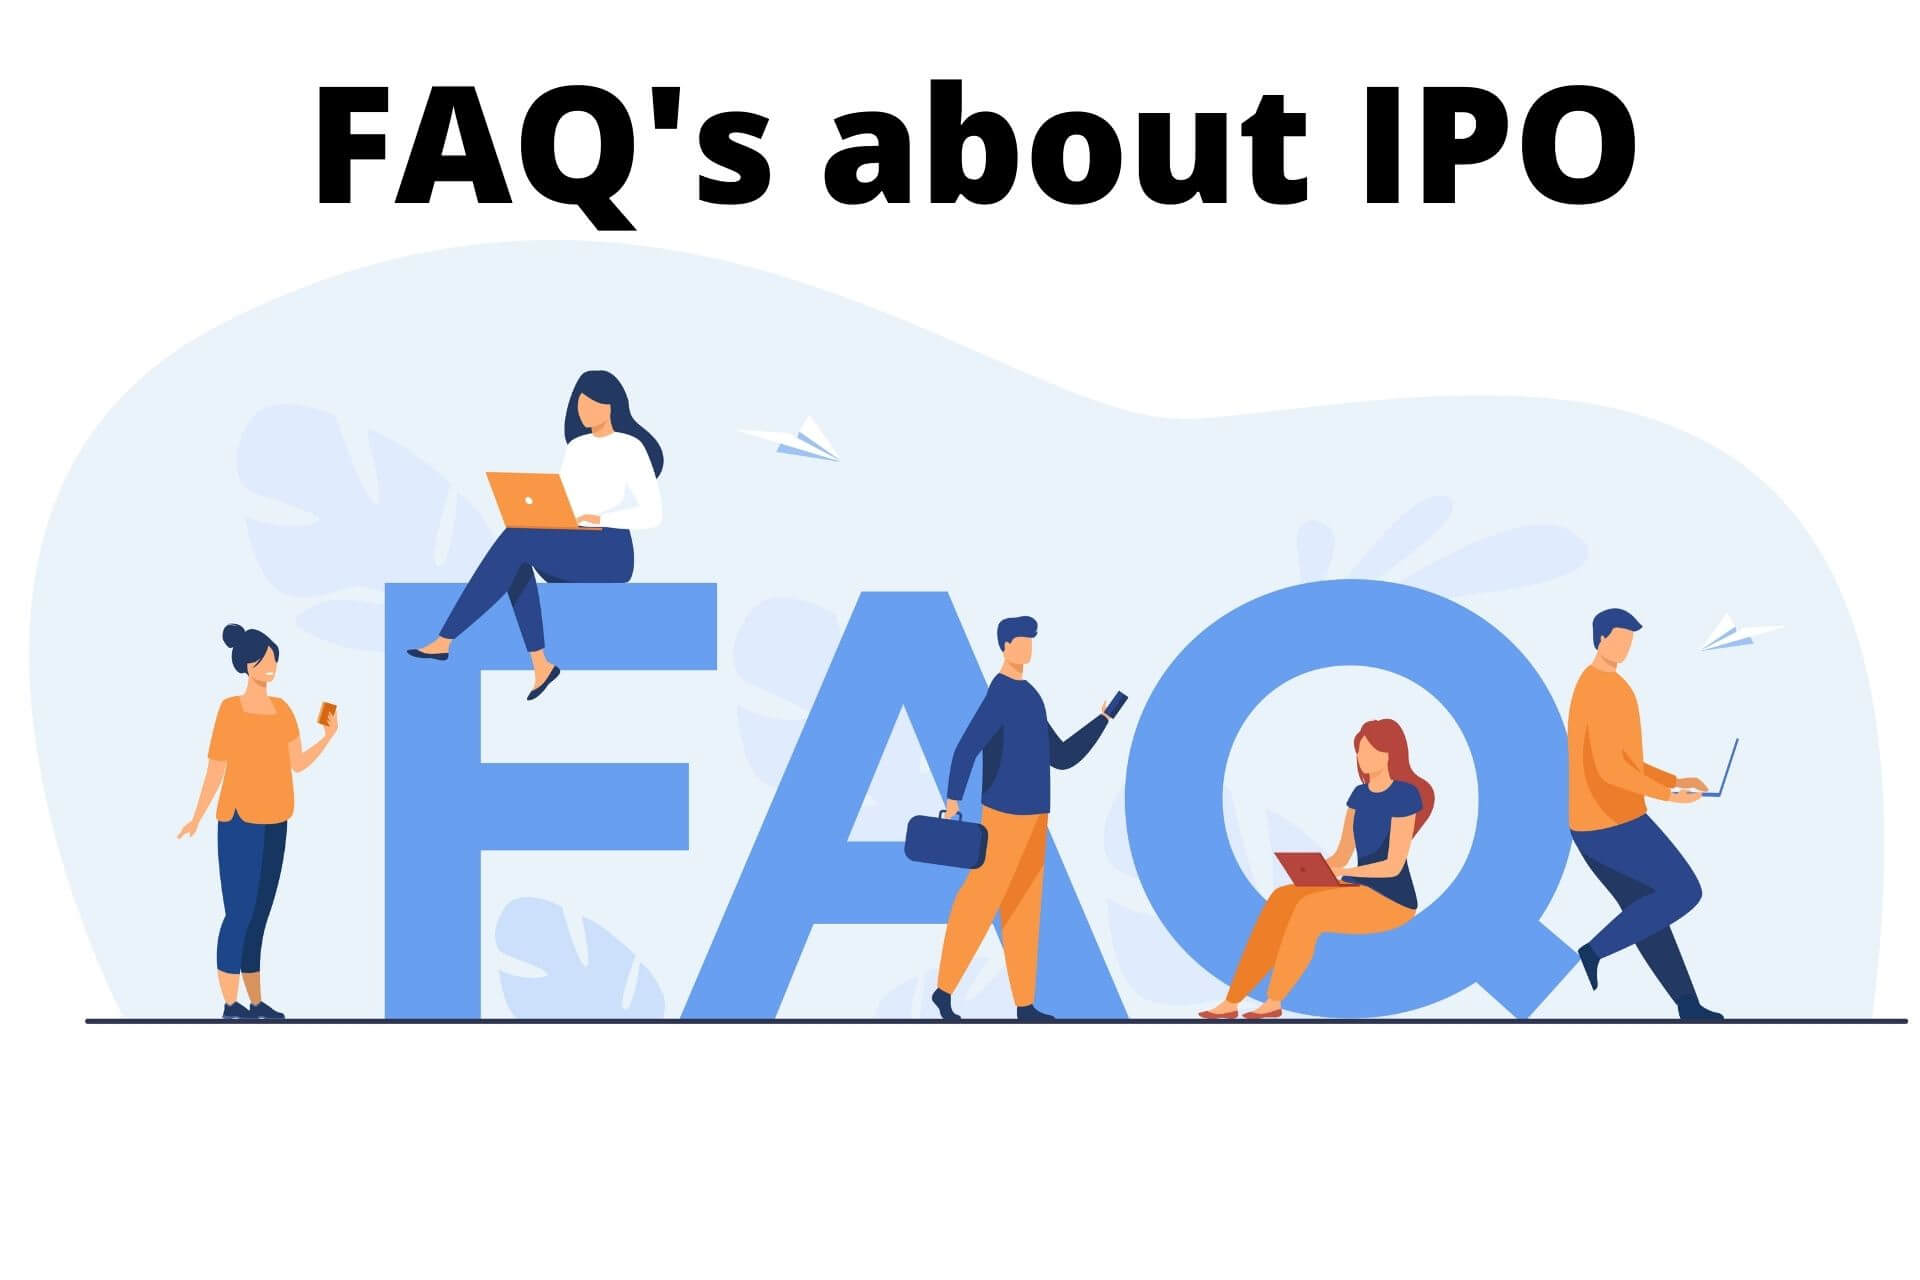 Frequently Asked Questions (FAQs) about IPOs